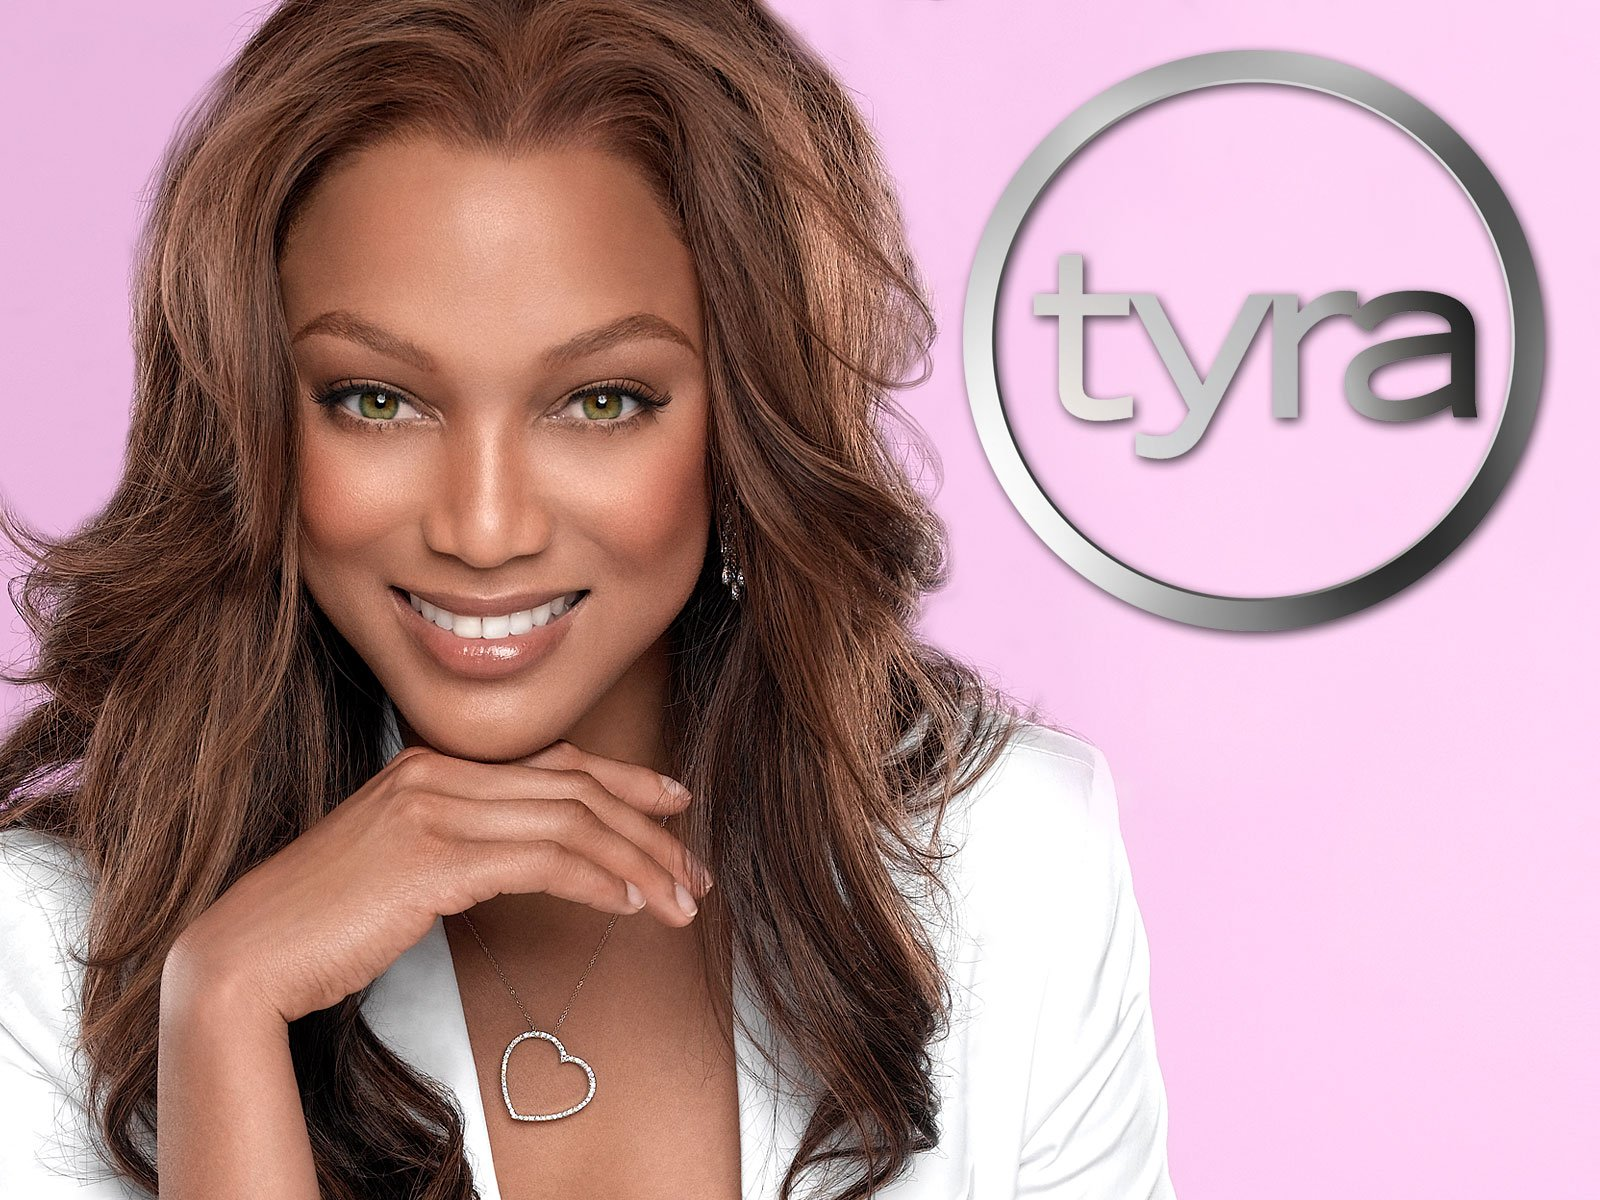 Tyra gay for pay turns out?